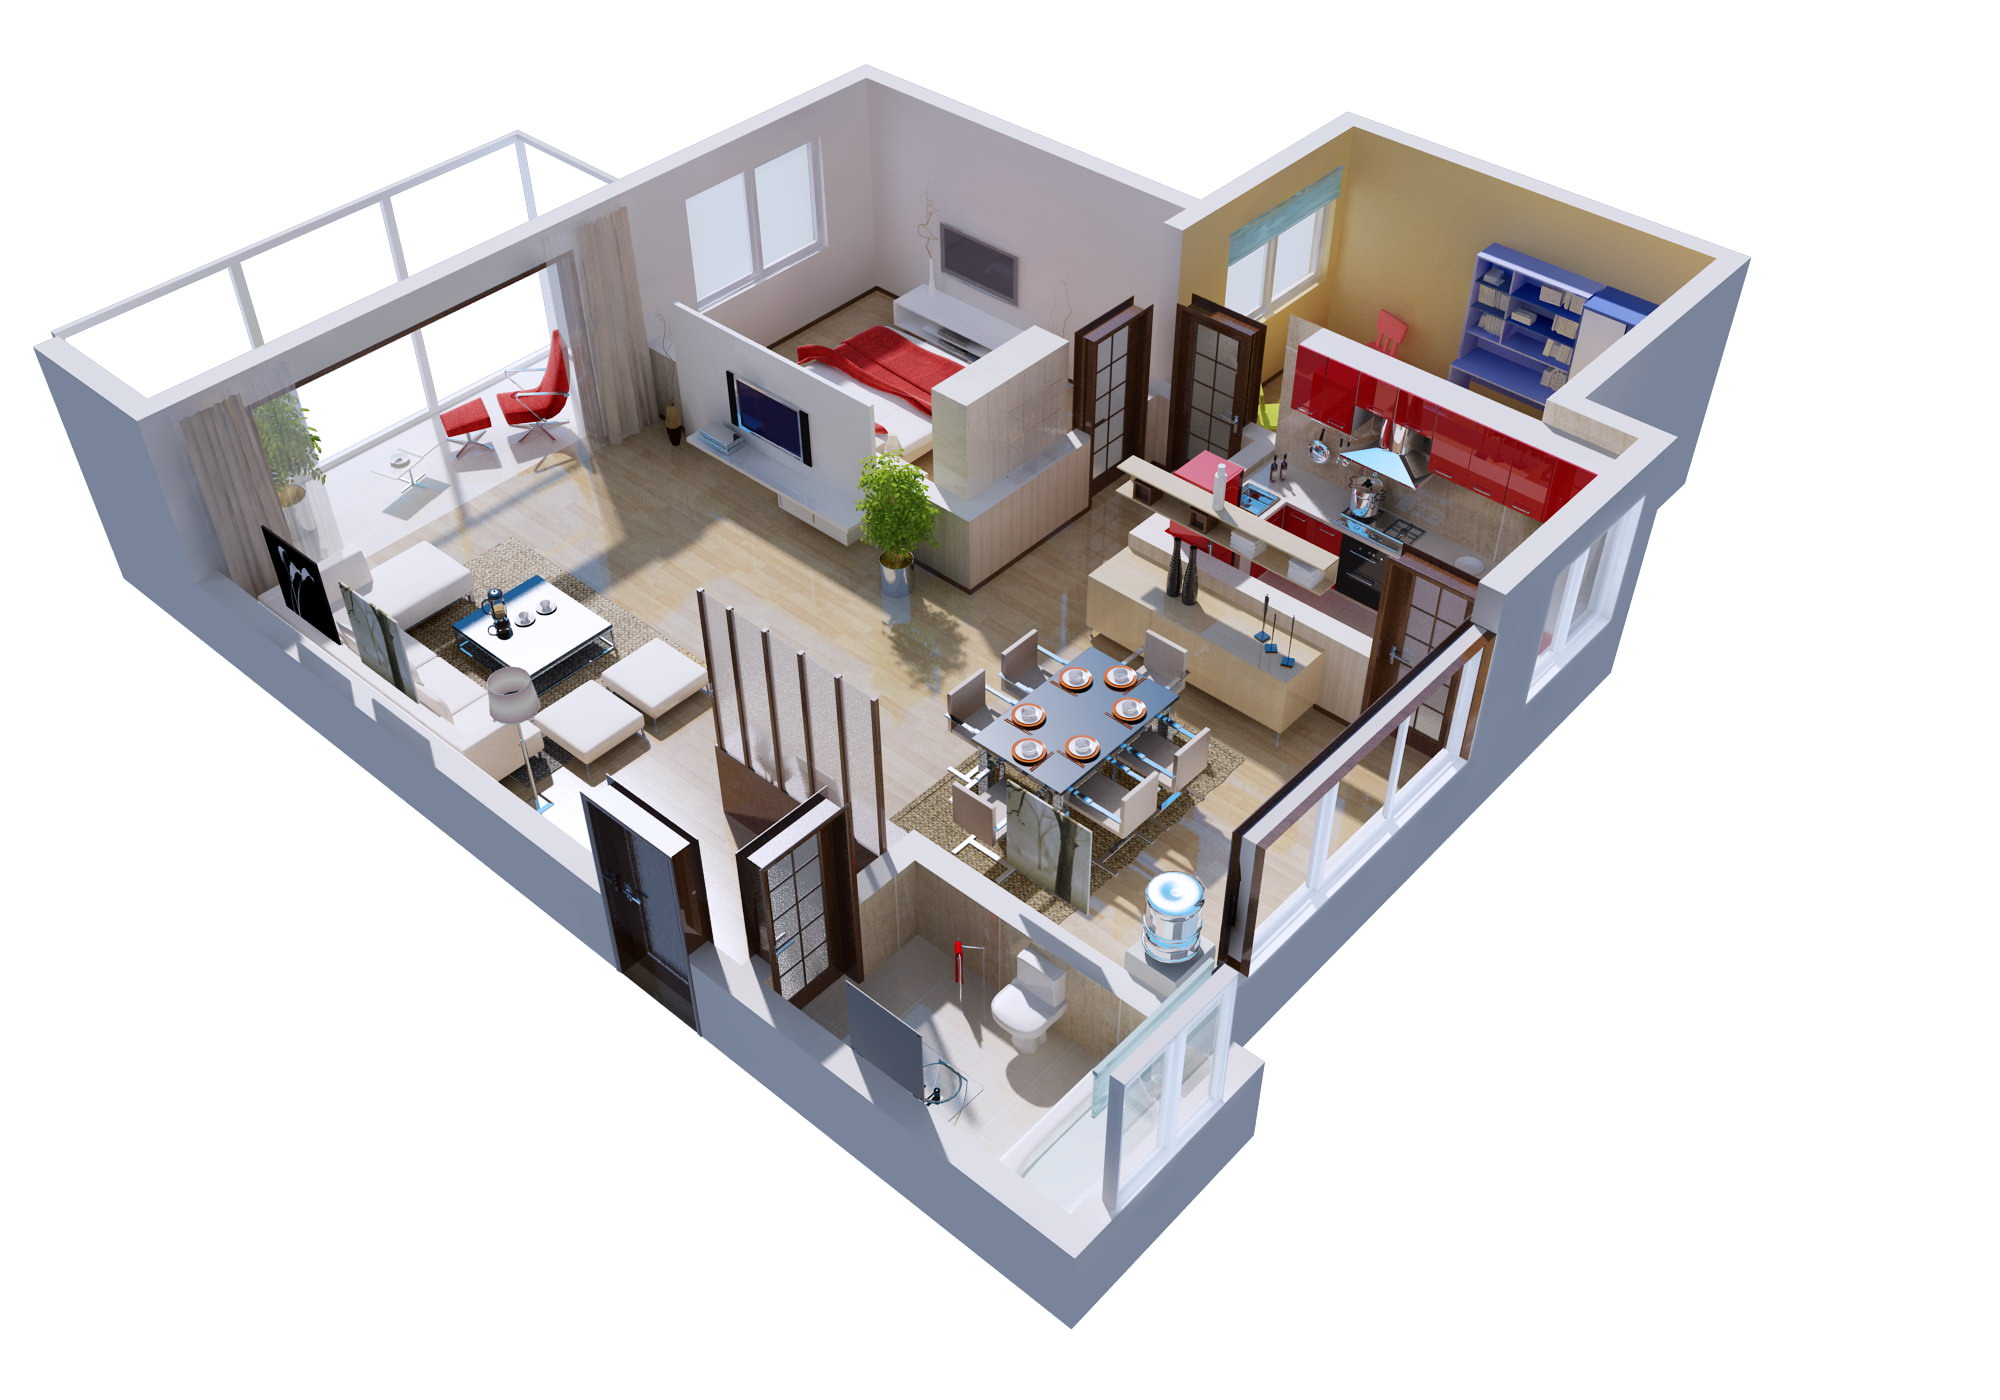 Posh house interior 3d model max for How to design 3d house plans